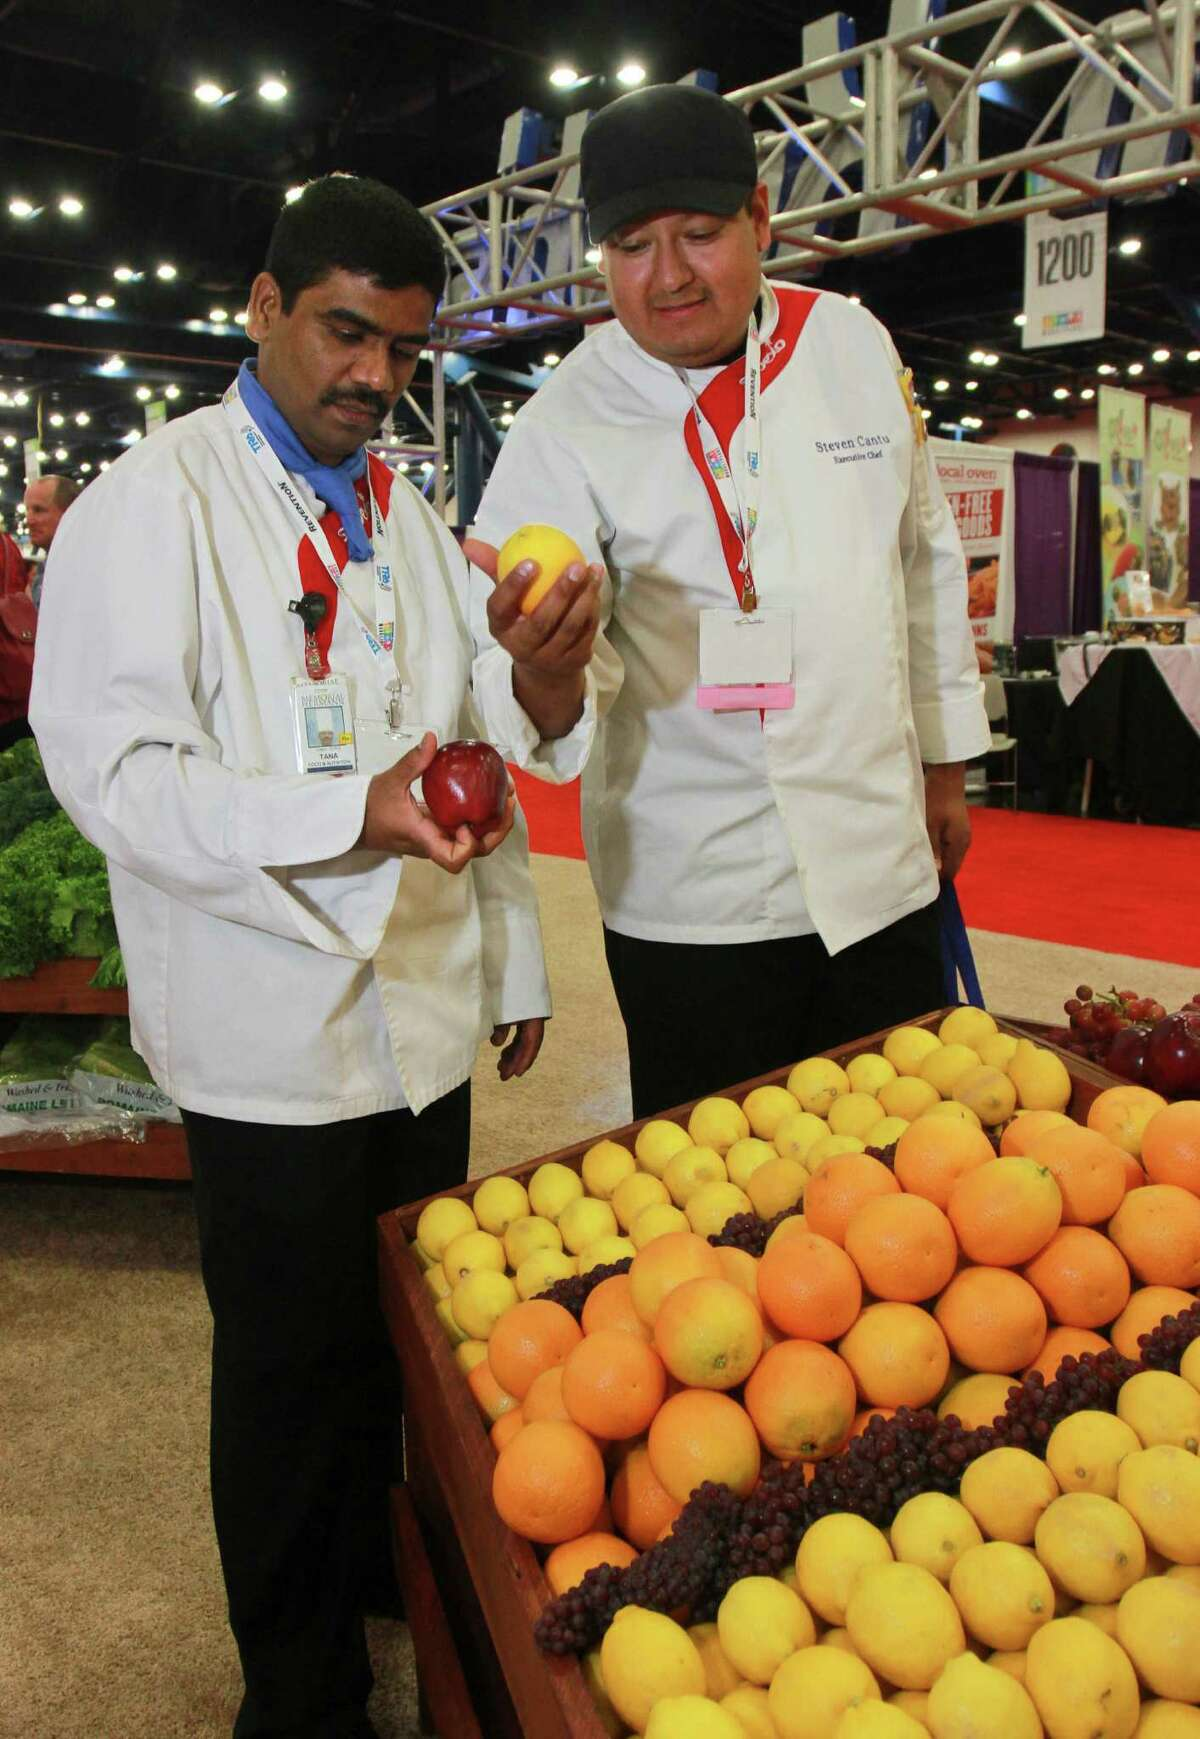 Tana Jothi (left), a Memorial Hermann sous chef, and Steven Cantu, executive chef with Memorial Hermann Southeast Hospital, look at the produce at Ben E. Keith Co. food service distributors at the 76th annual Texas Restaurant Association foodservice show held recently at the George R. Brown Convention Center in Houston.